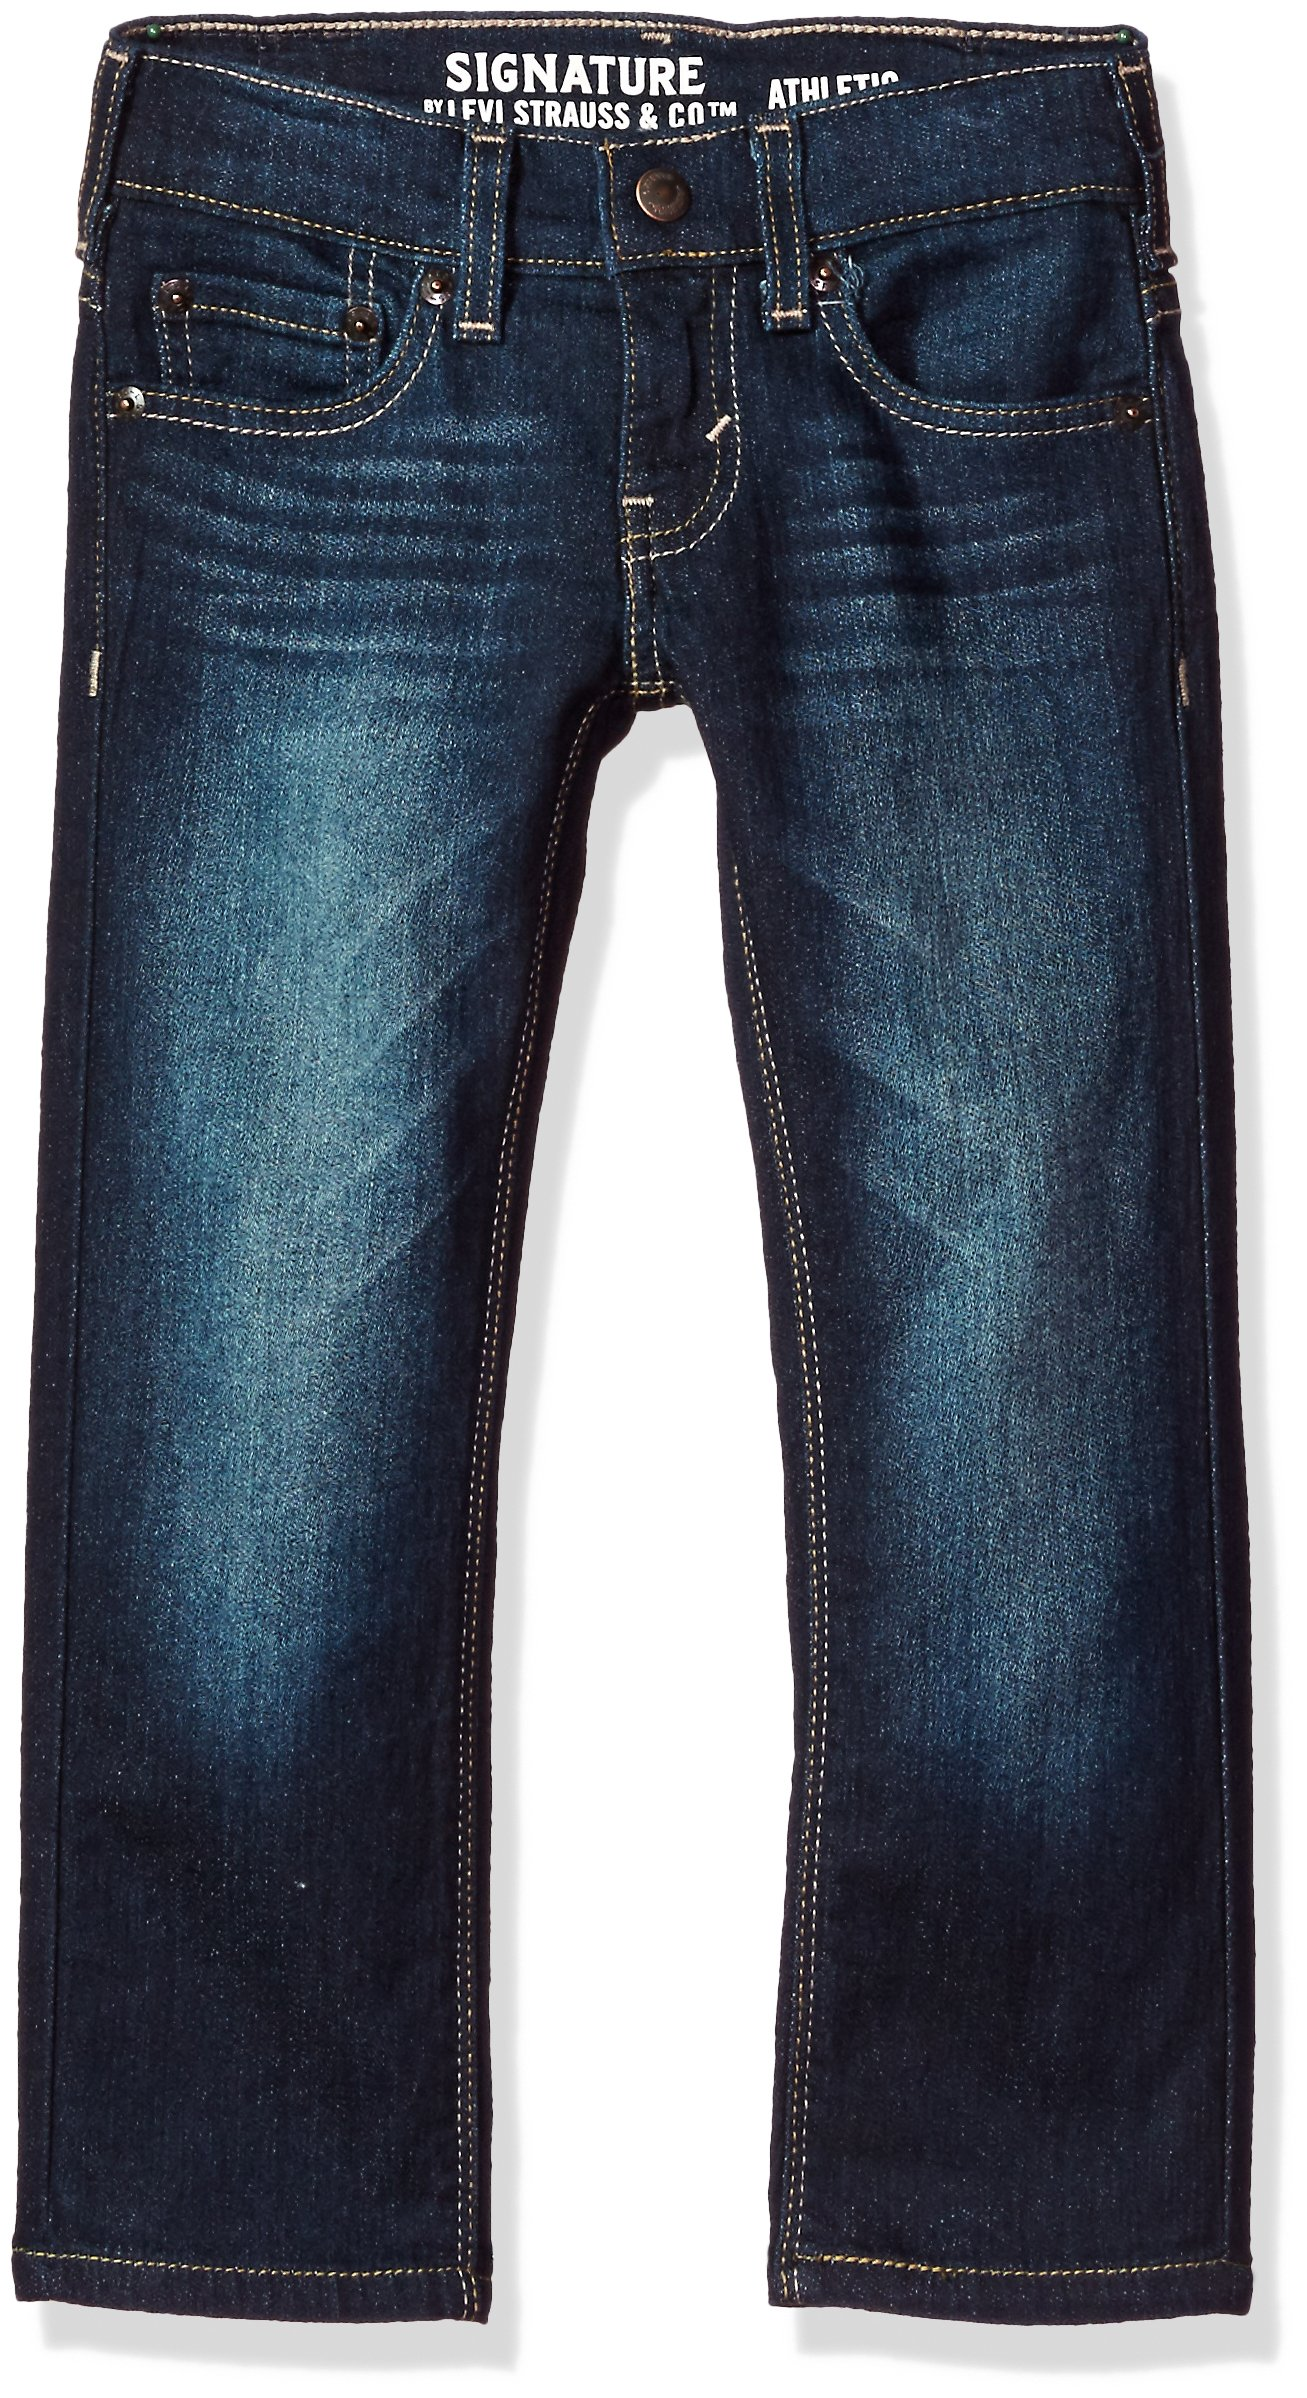 Signature by Levi Strauss & Co. Gold Label Big Boys' Athletic Fit Jeans, Grande, 12